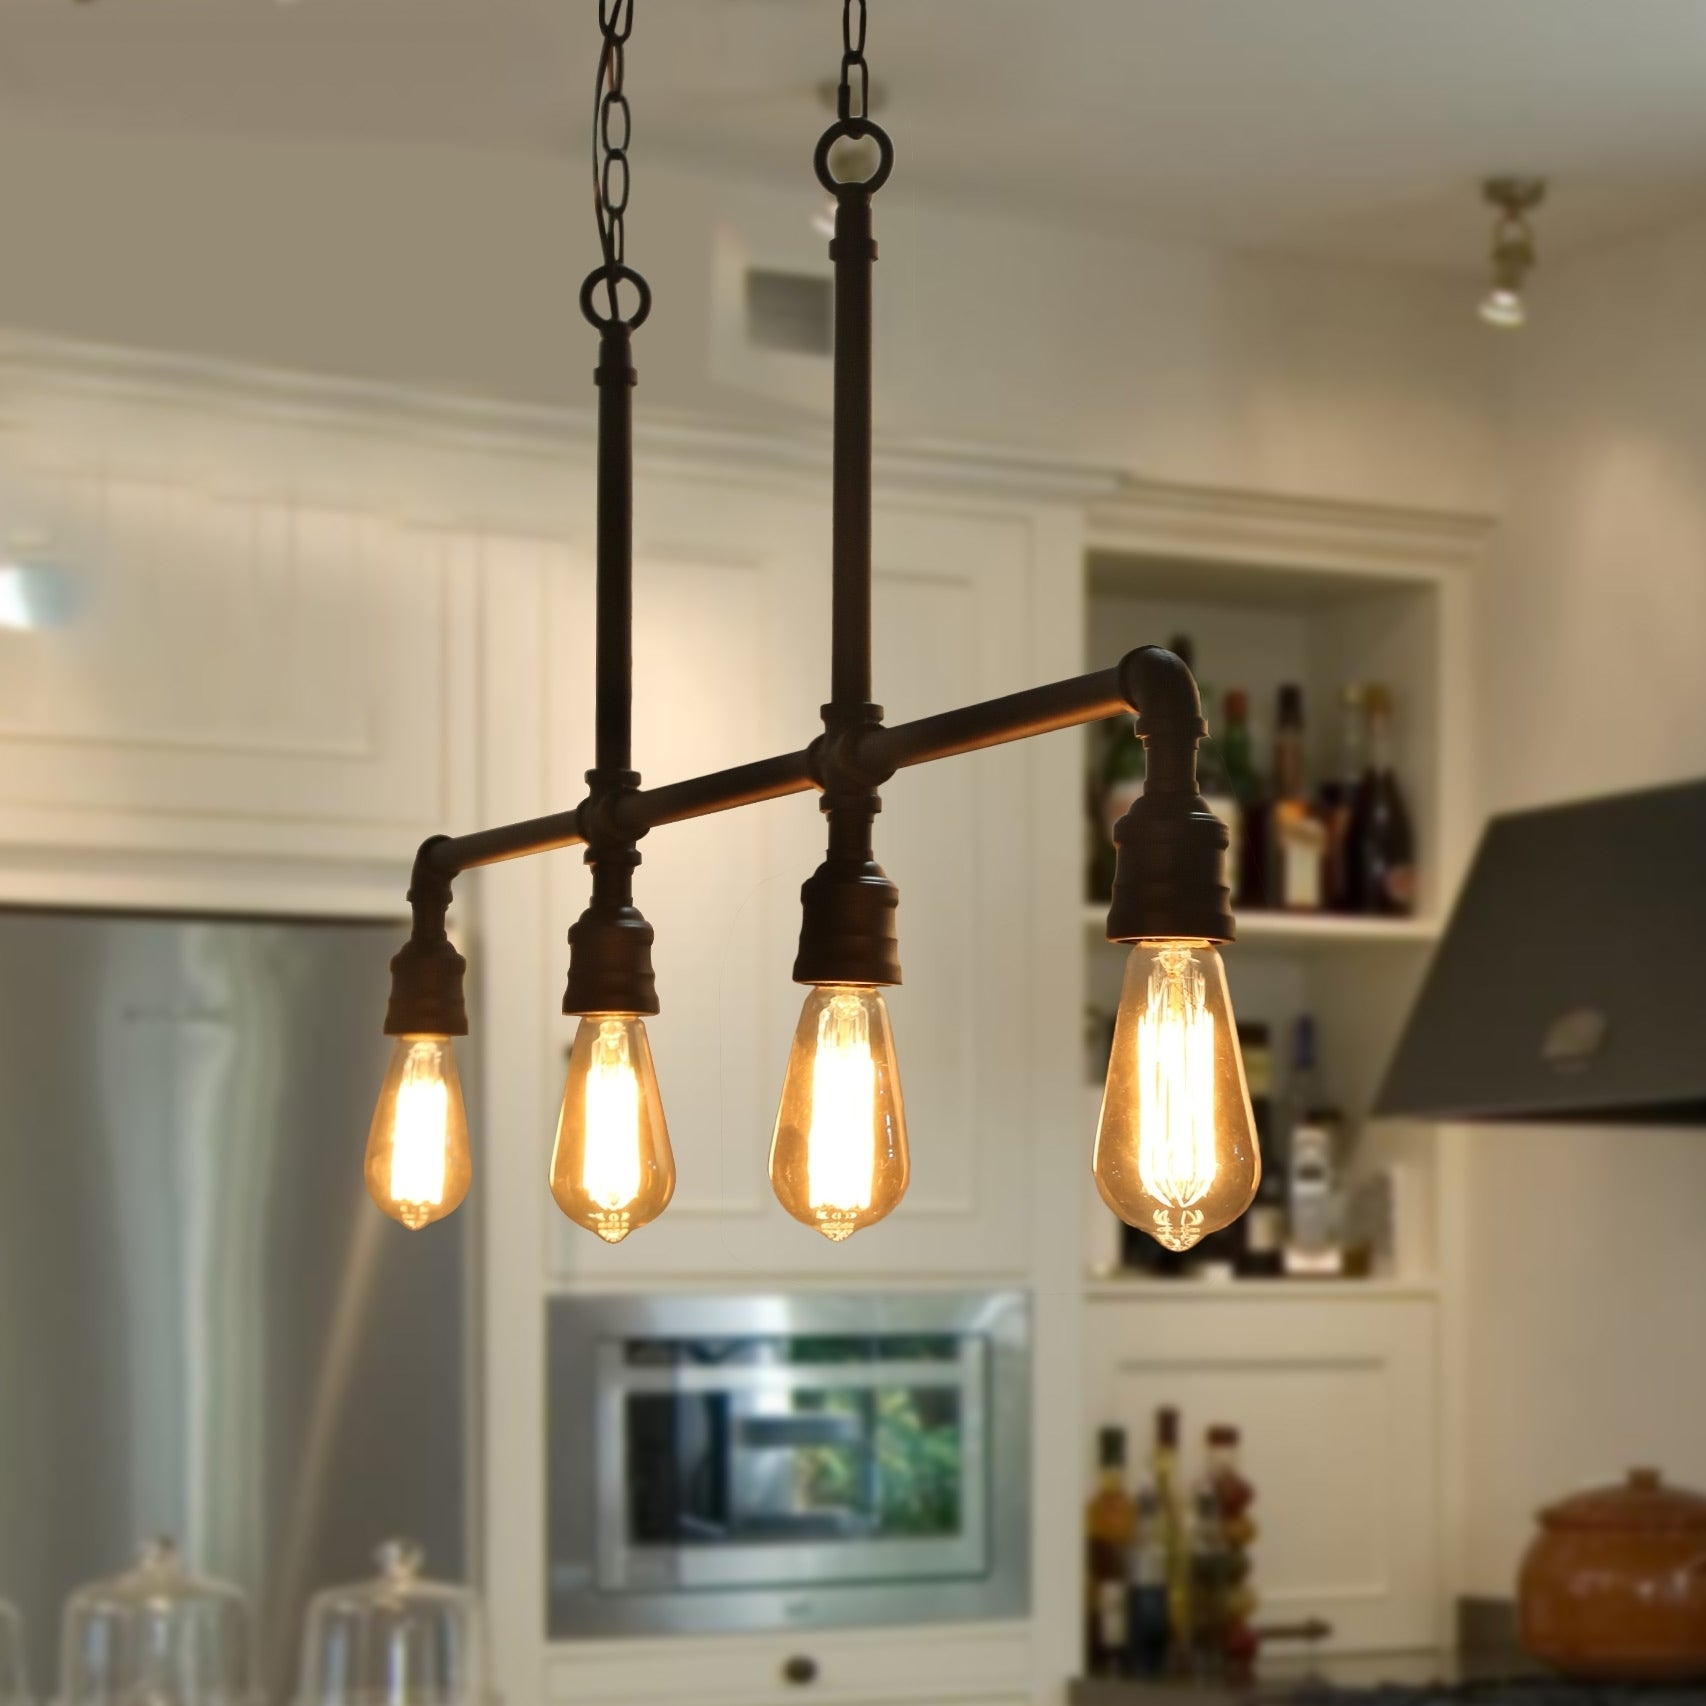 The Gray Barn Heavenly Winds 4-light Linear Kitchen Island Industrial  Pendant - N/A